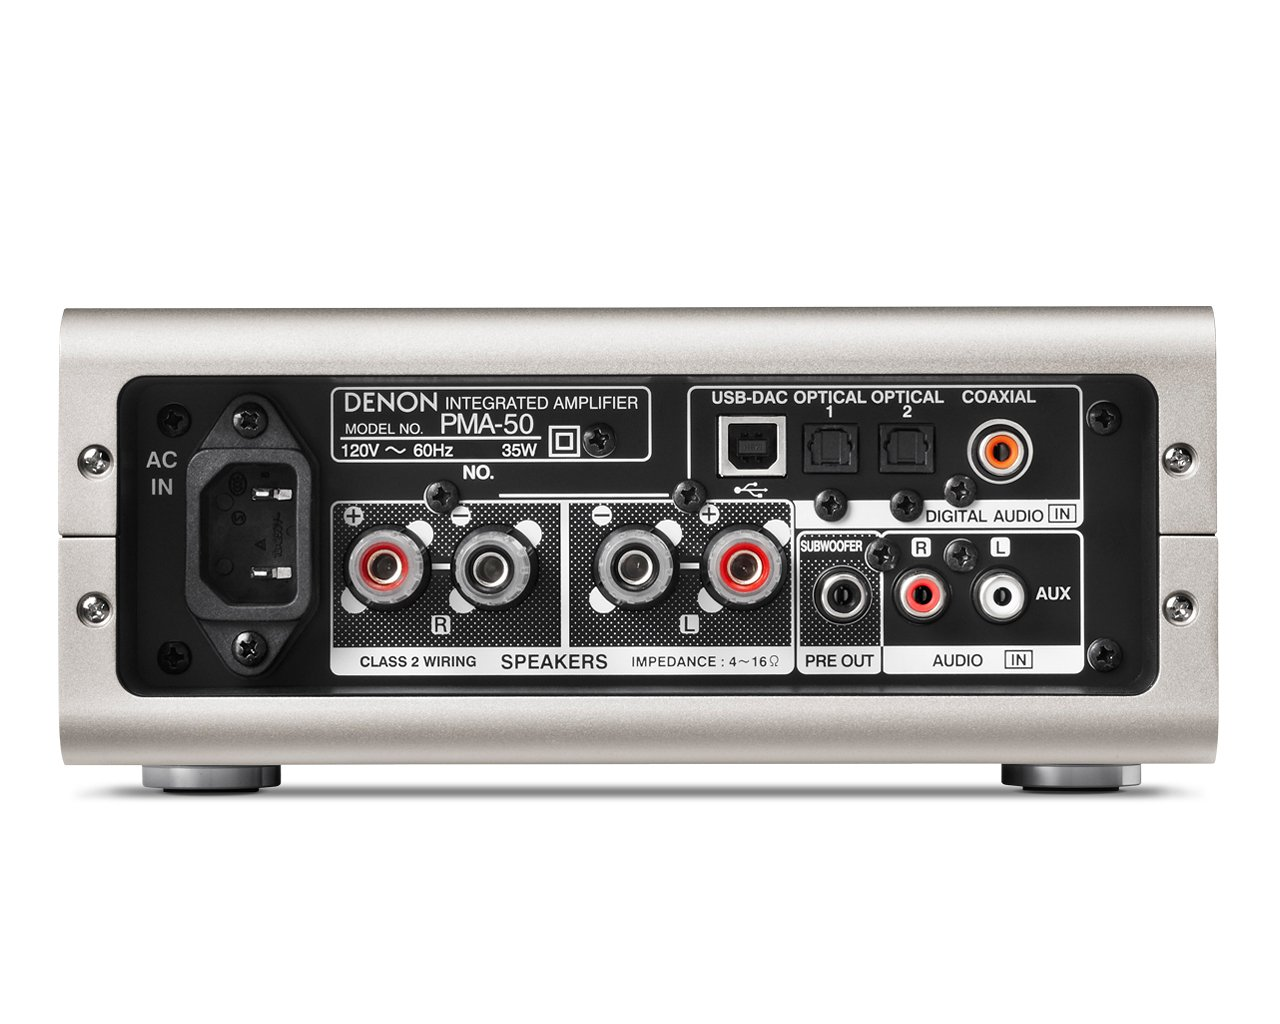 Denon Pma 50 Compact Digital Amplifier Home Audio Theater Power Circuit Hd Walls Find Wallpapers